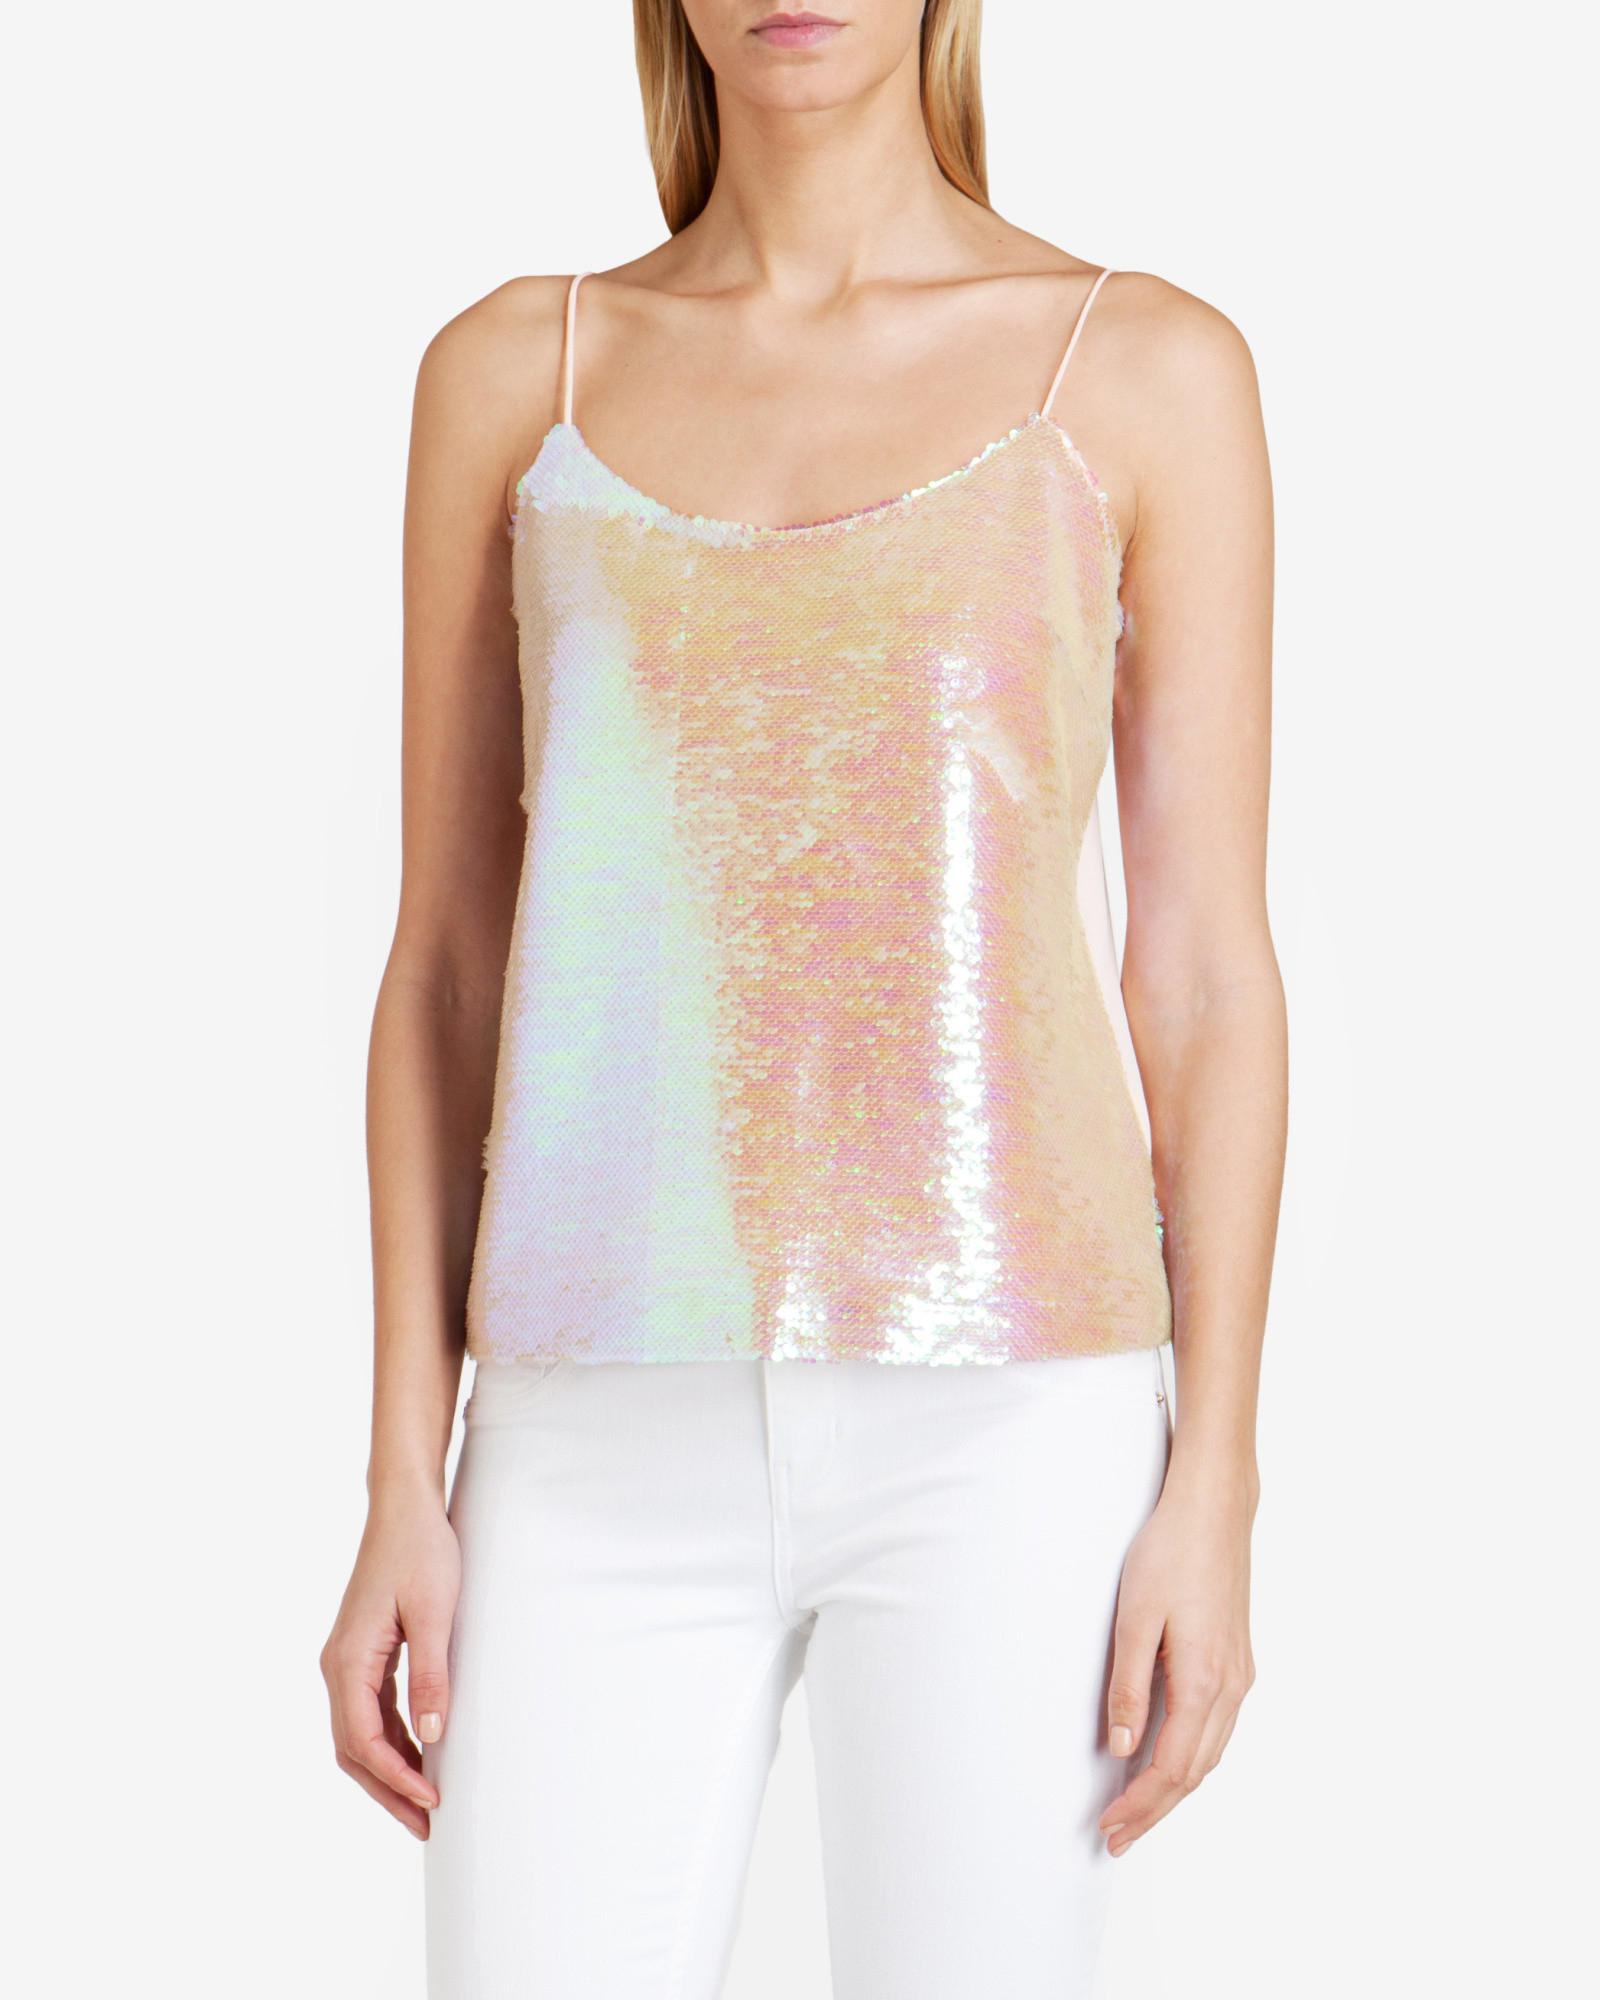 dc34b632be1a1 Ted Baker Sequin Cami Top in Pink - Lyst